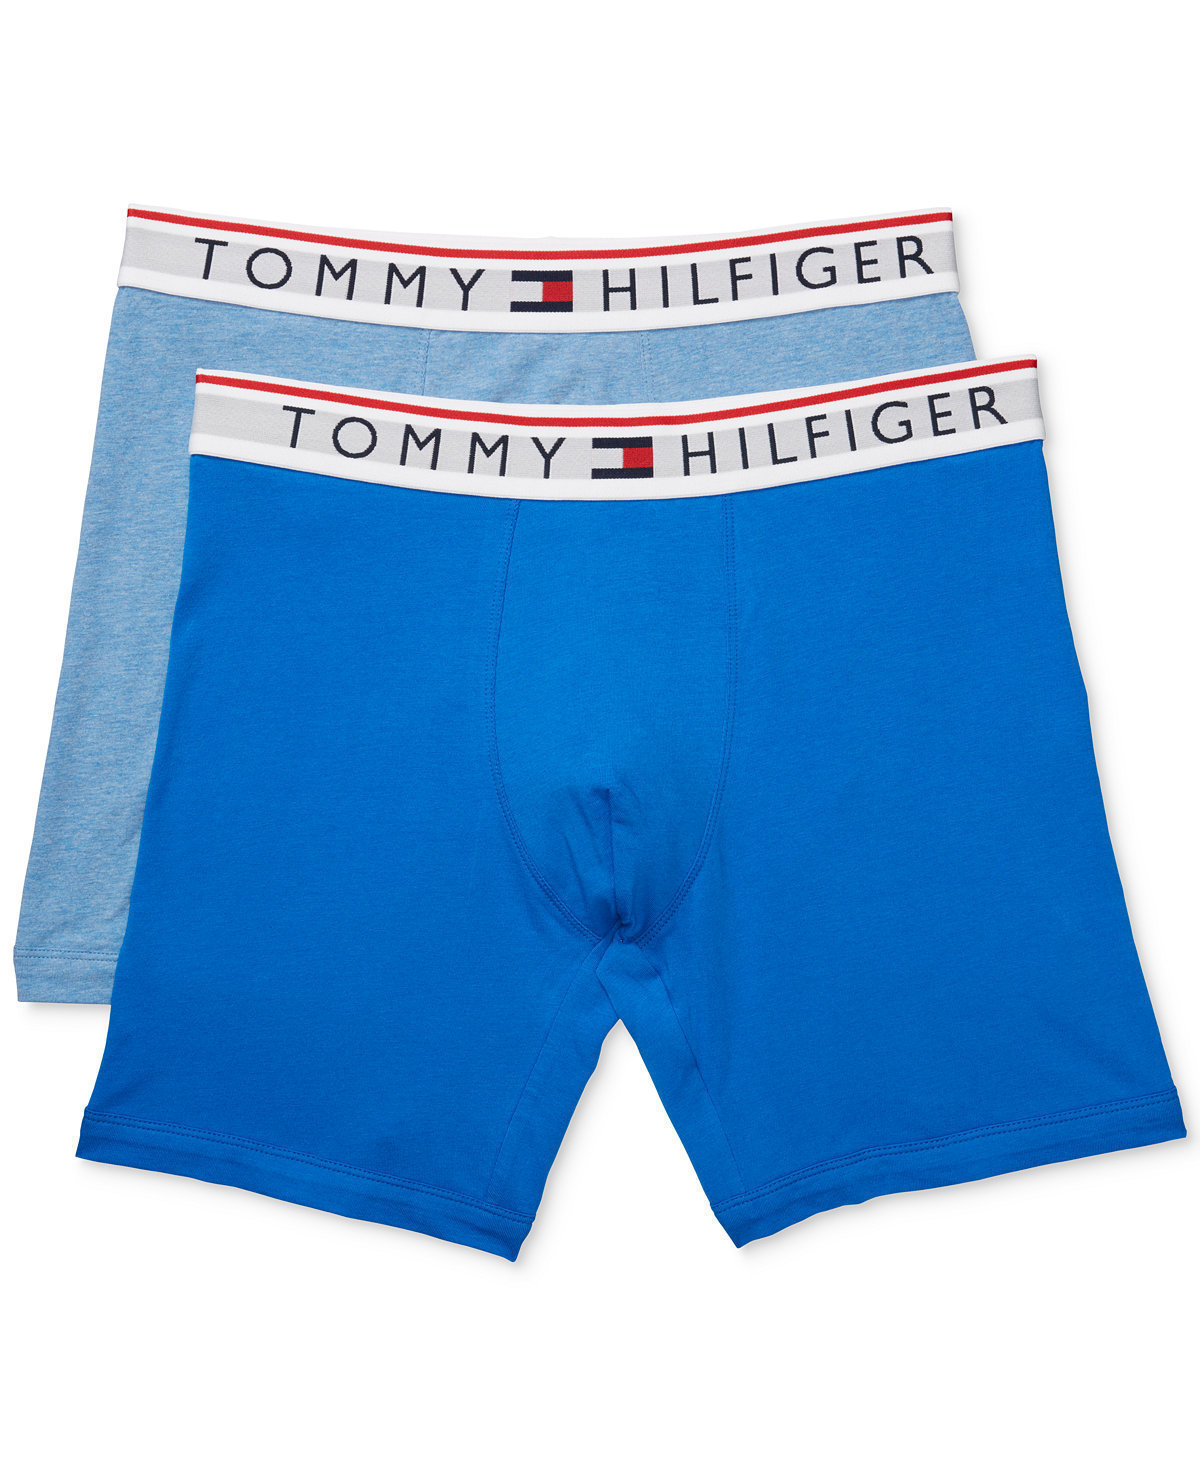 【Tommy Hilfiger】新作/送料込★ロゴボクサーブリーフ2点セット